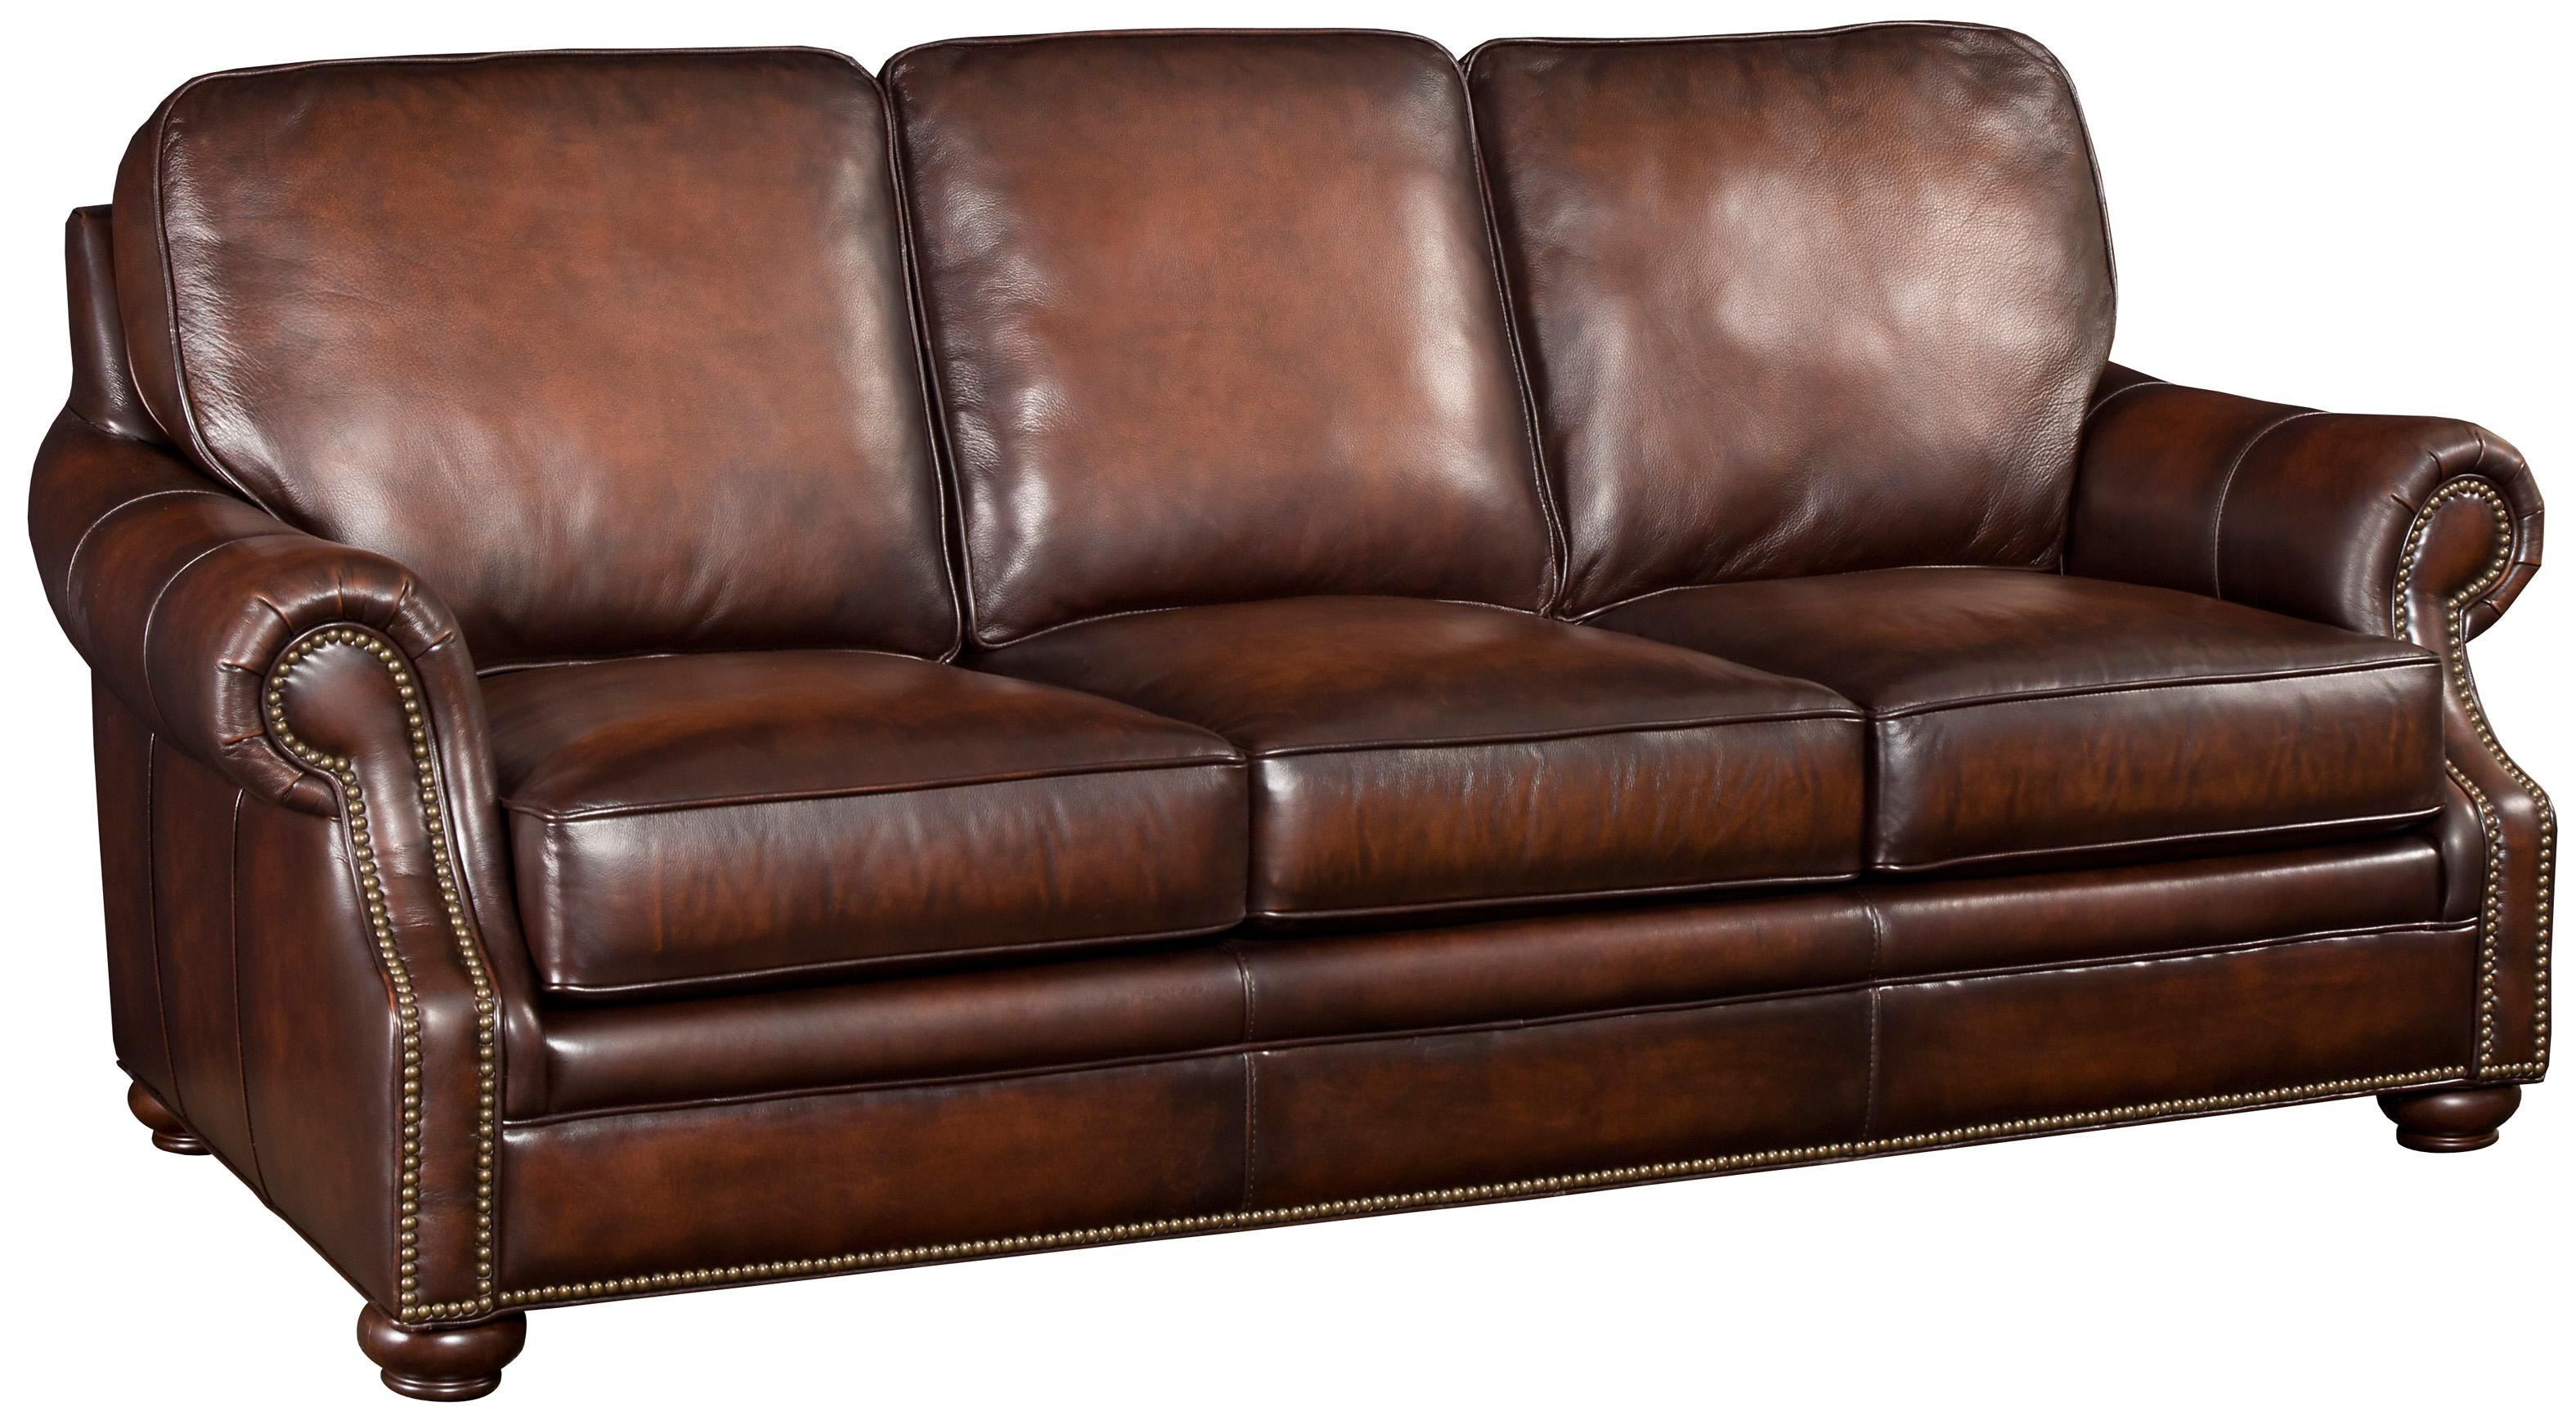 Hooker furniture ss185 brown leather sofa with wood for Leather sofa